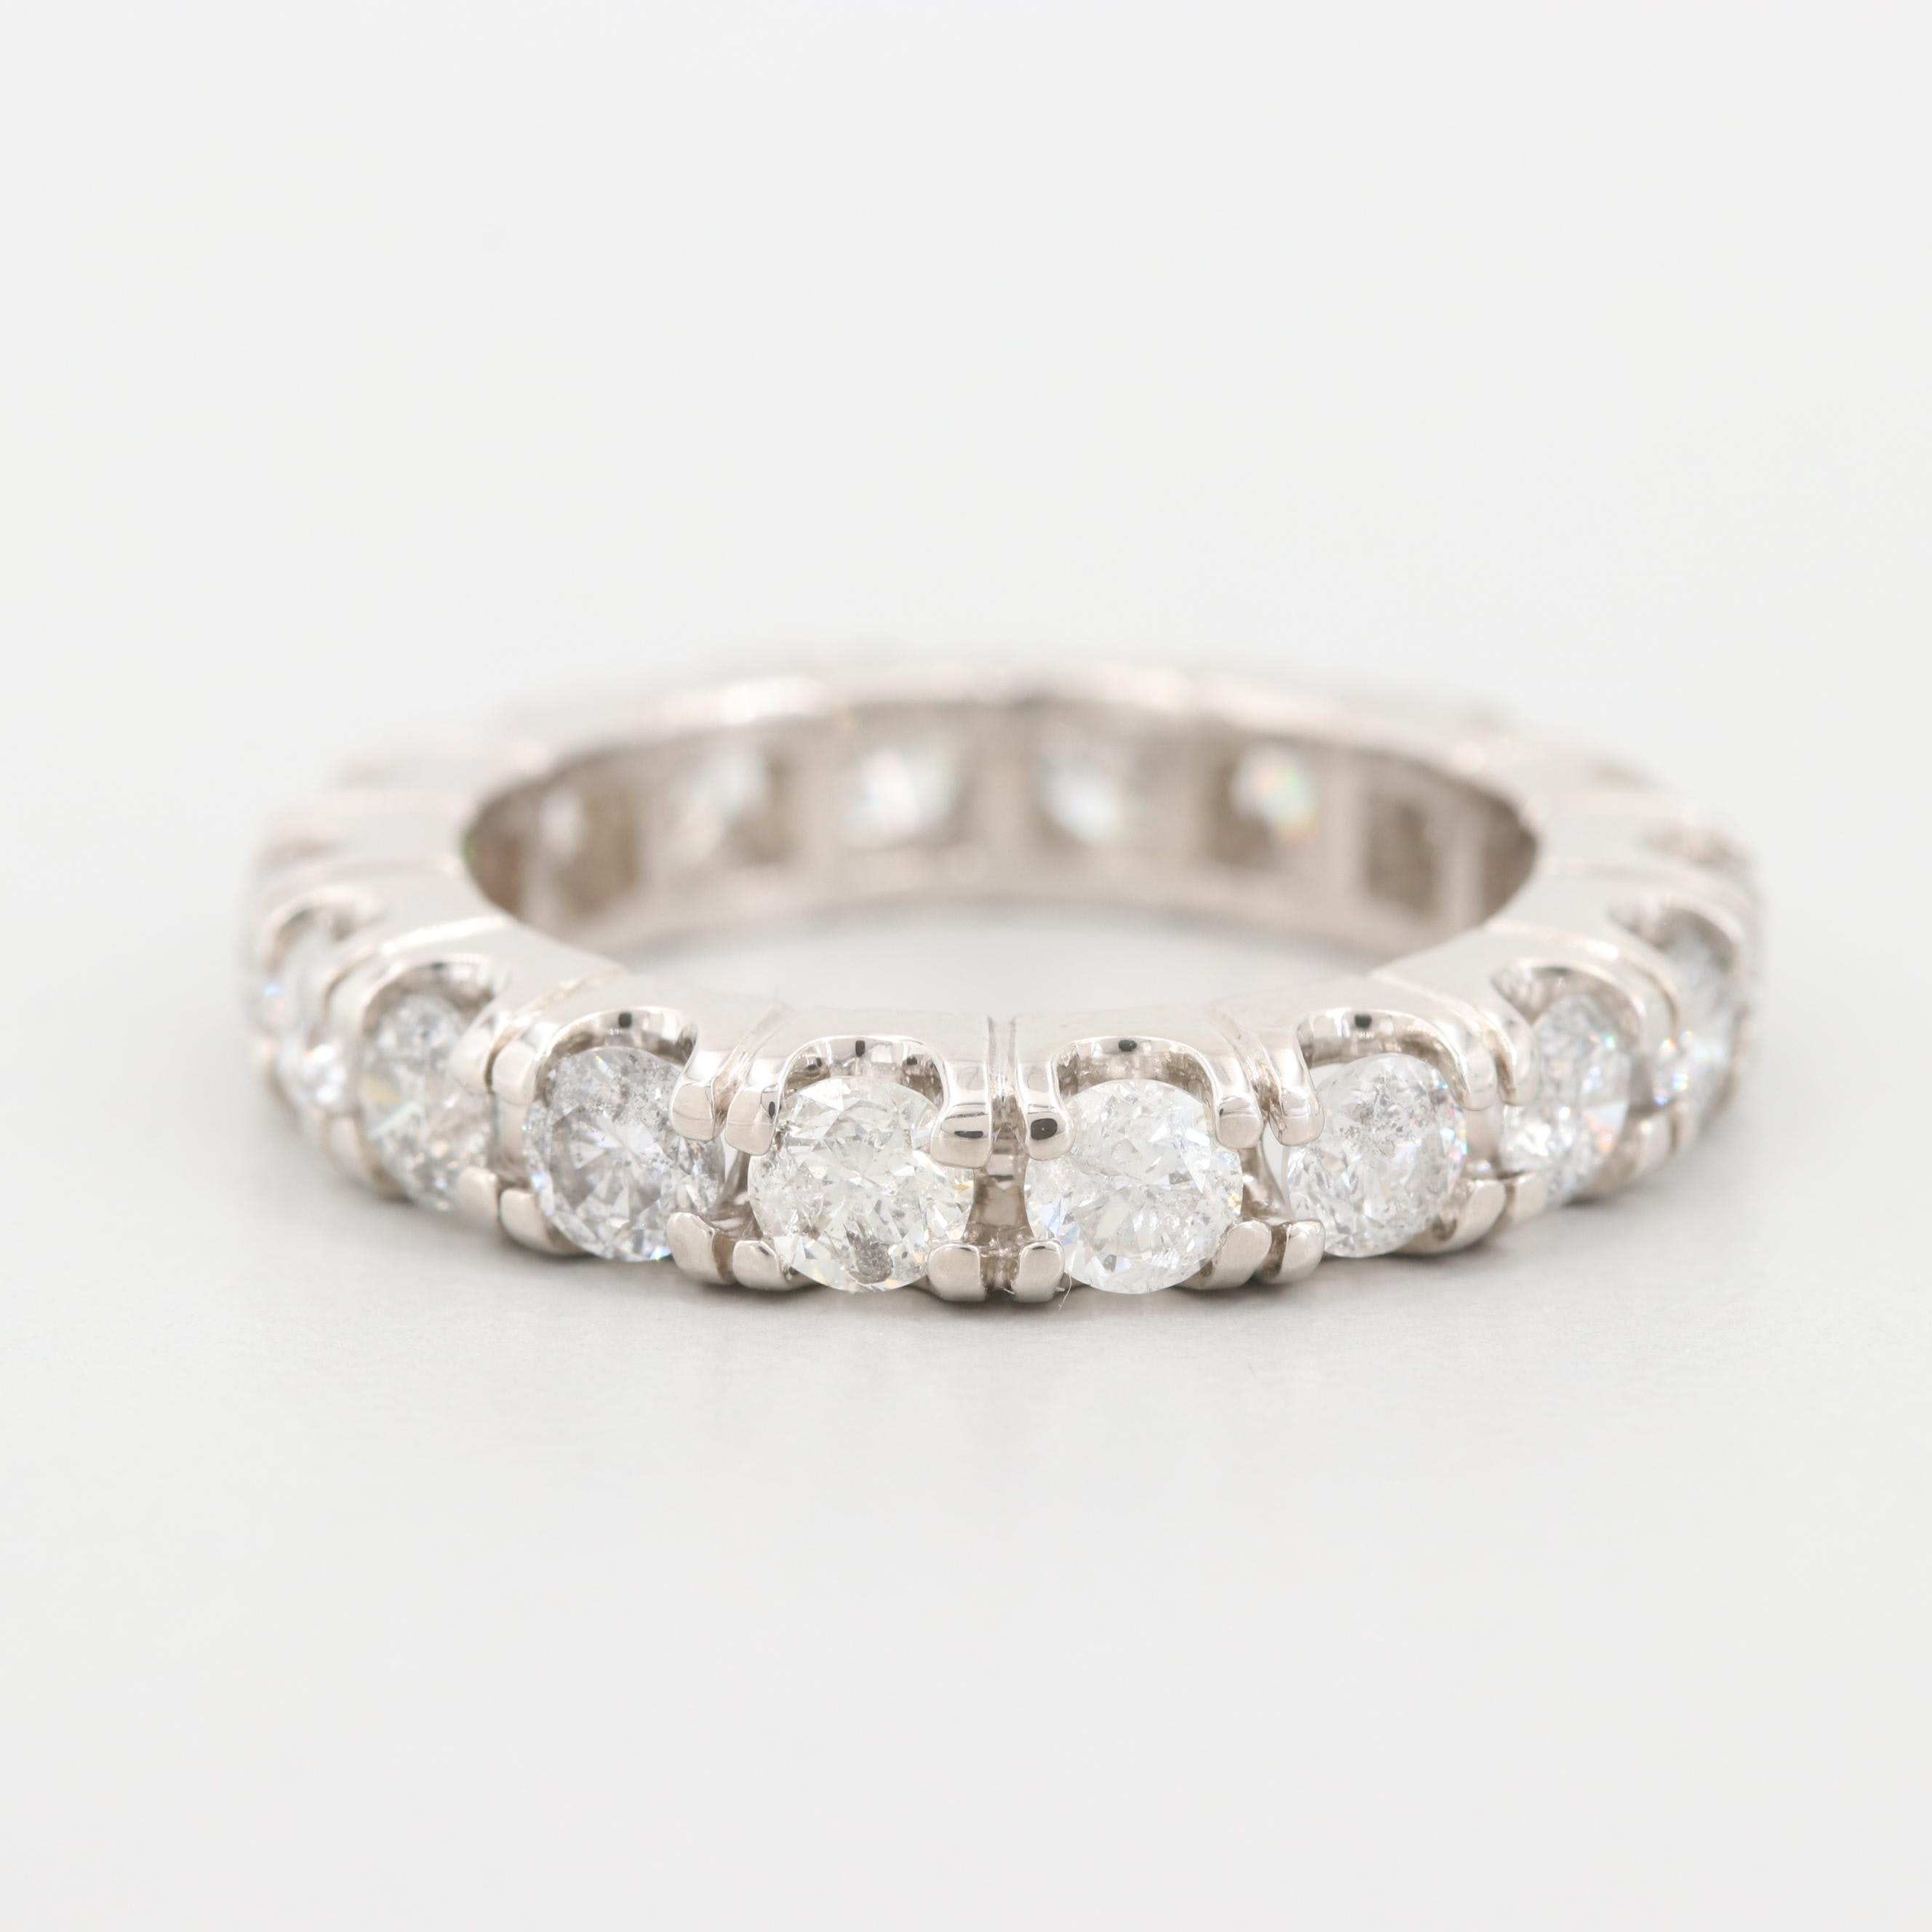 14K White Gold 2.17 CTW Diamond Eternity Band